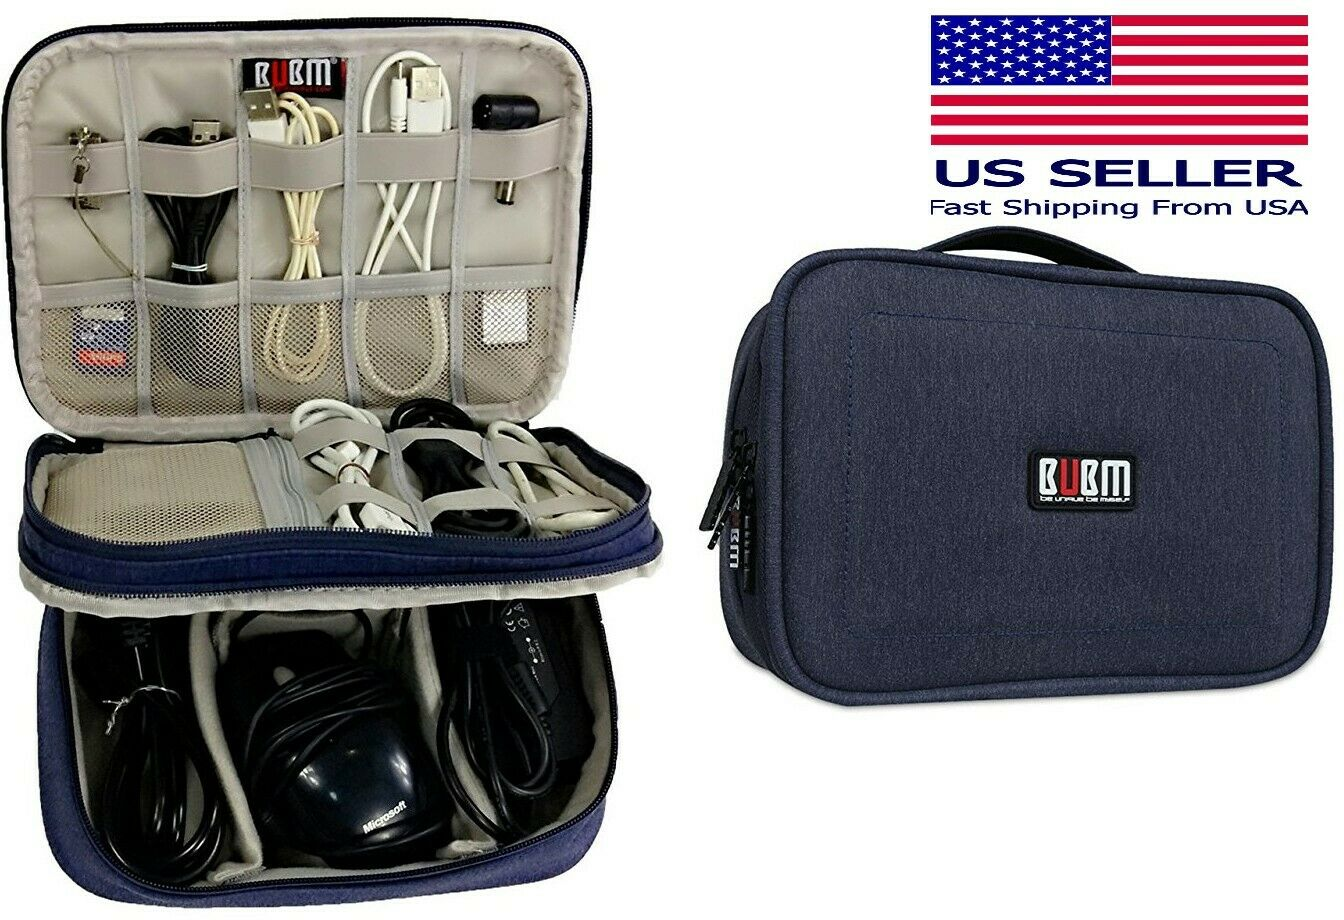 BUBM Electronics Organizer, 2 Compartments Carry Case Dark Blue 9″ for Ipad Mini Other Travel Accessories